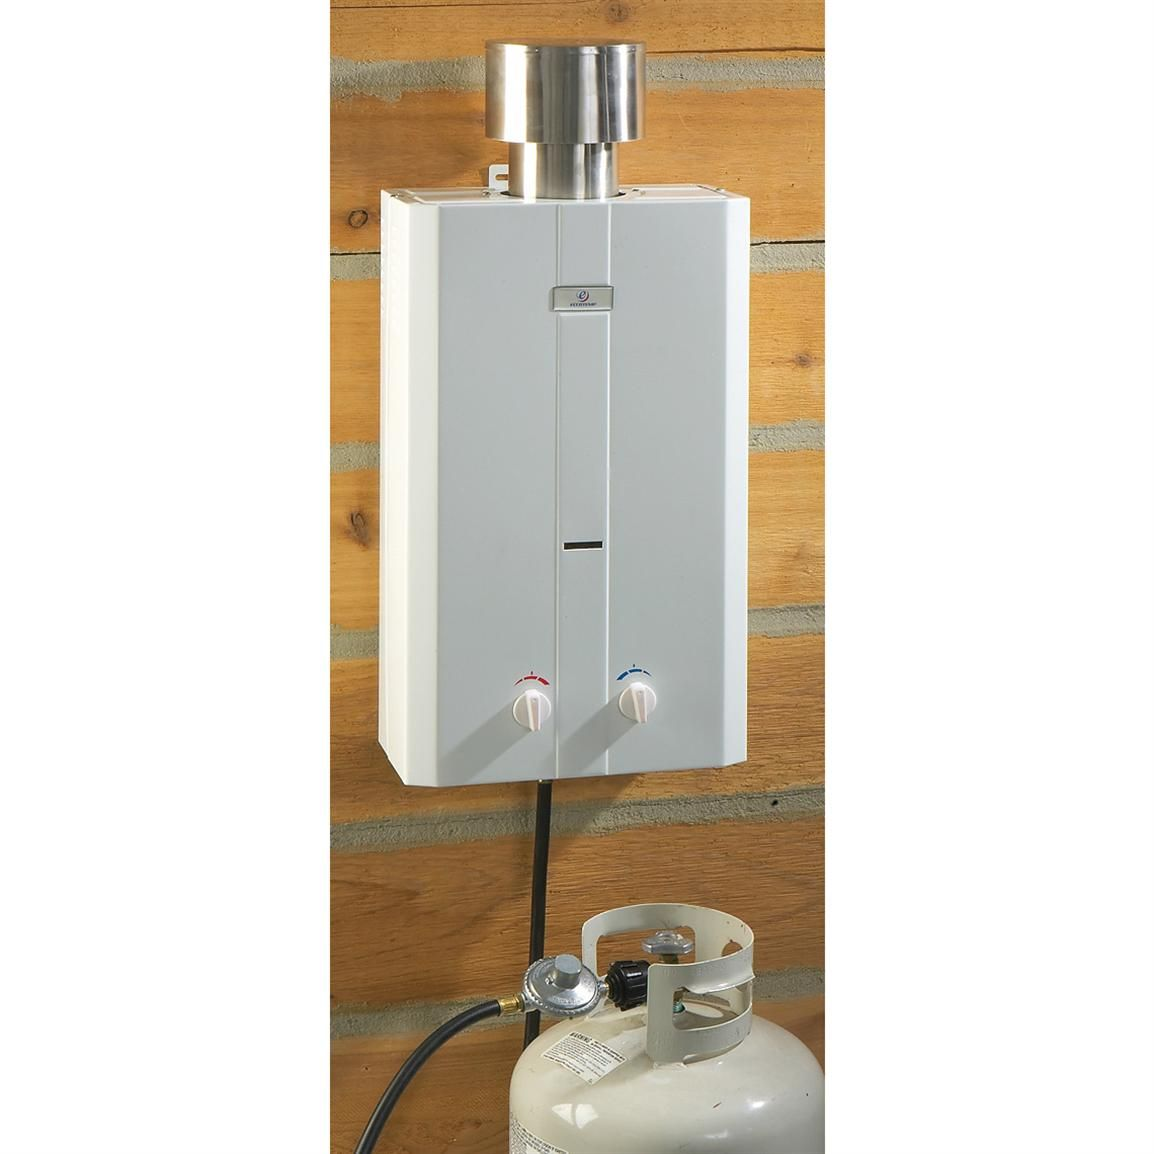 Eccotemp® L10 Portable Tankless Water Heater